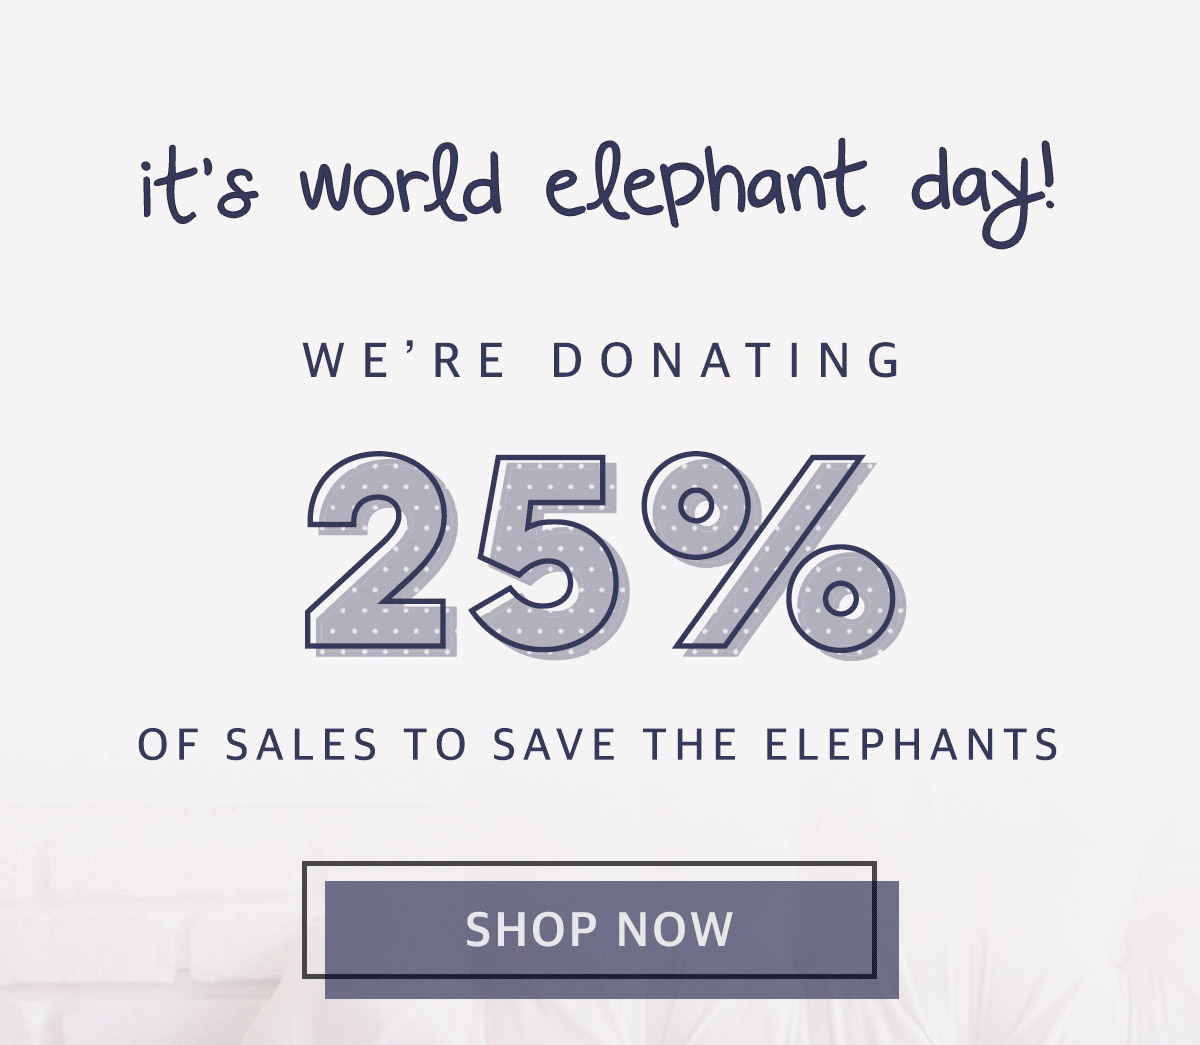 It's world elephant day! We're donating 25% of sales to save the elephants. Shop now!